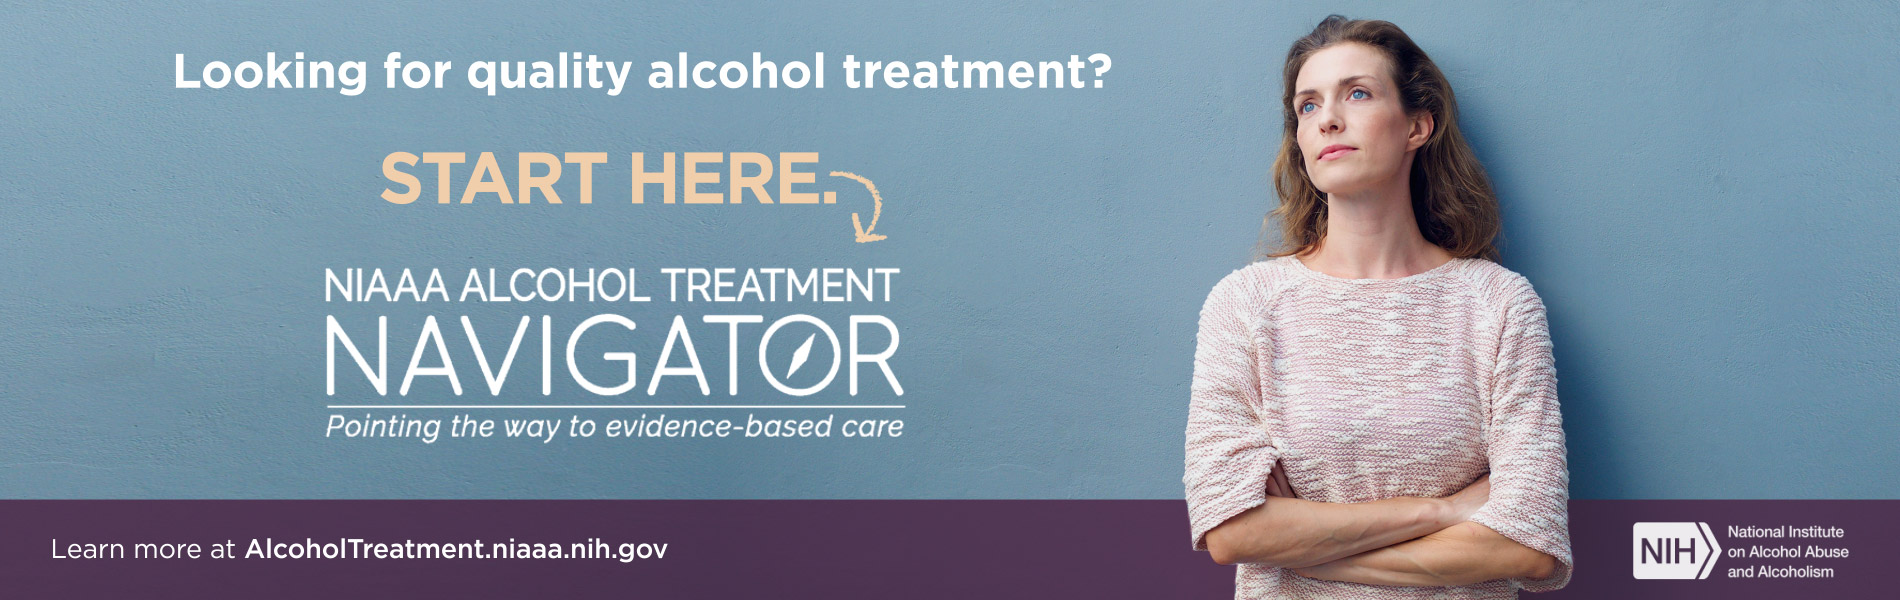 Looking for quality treatment. It's about getting the right Alcohol Treatment